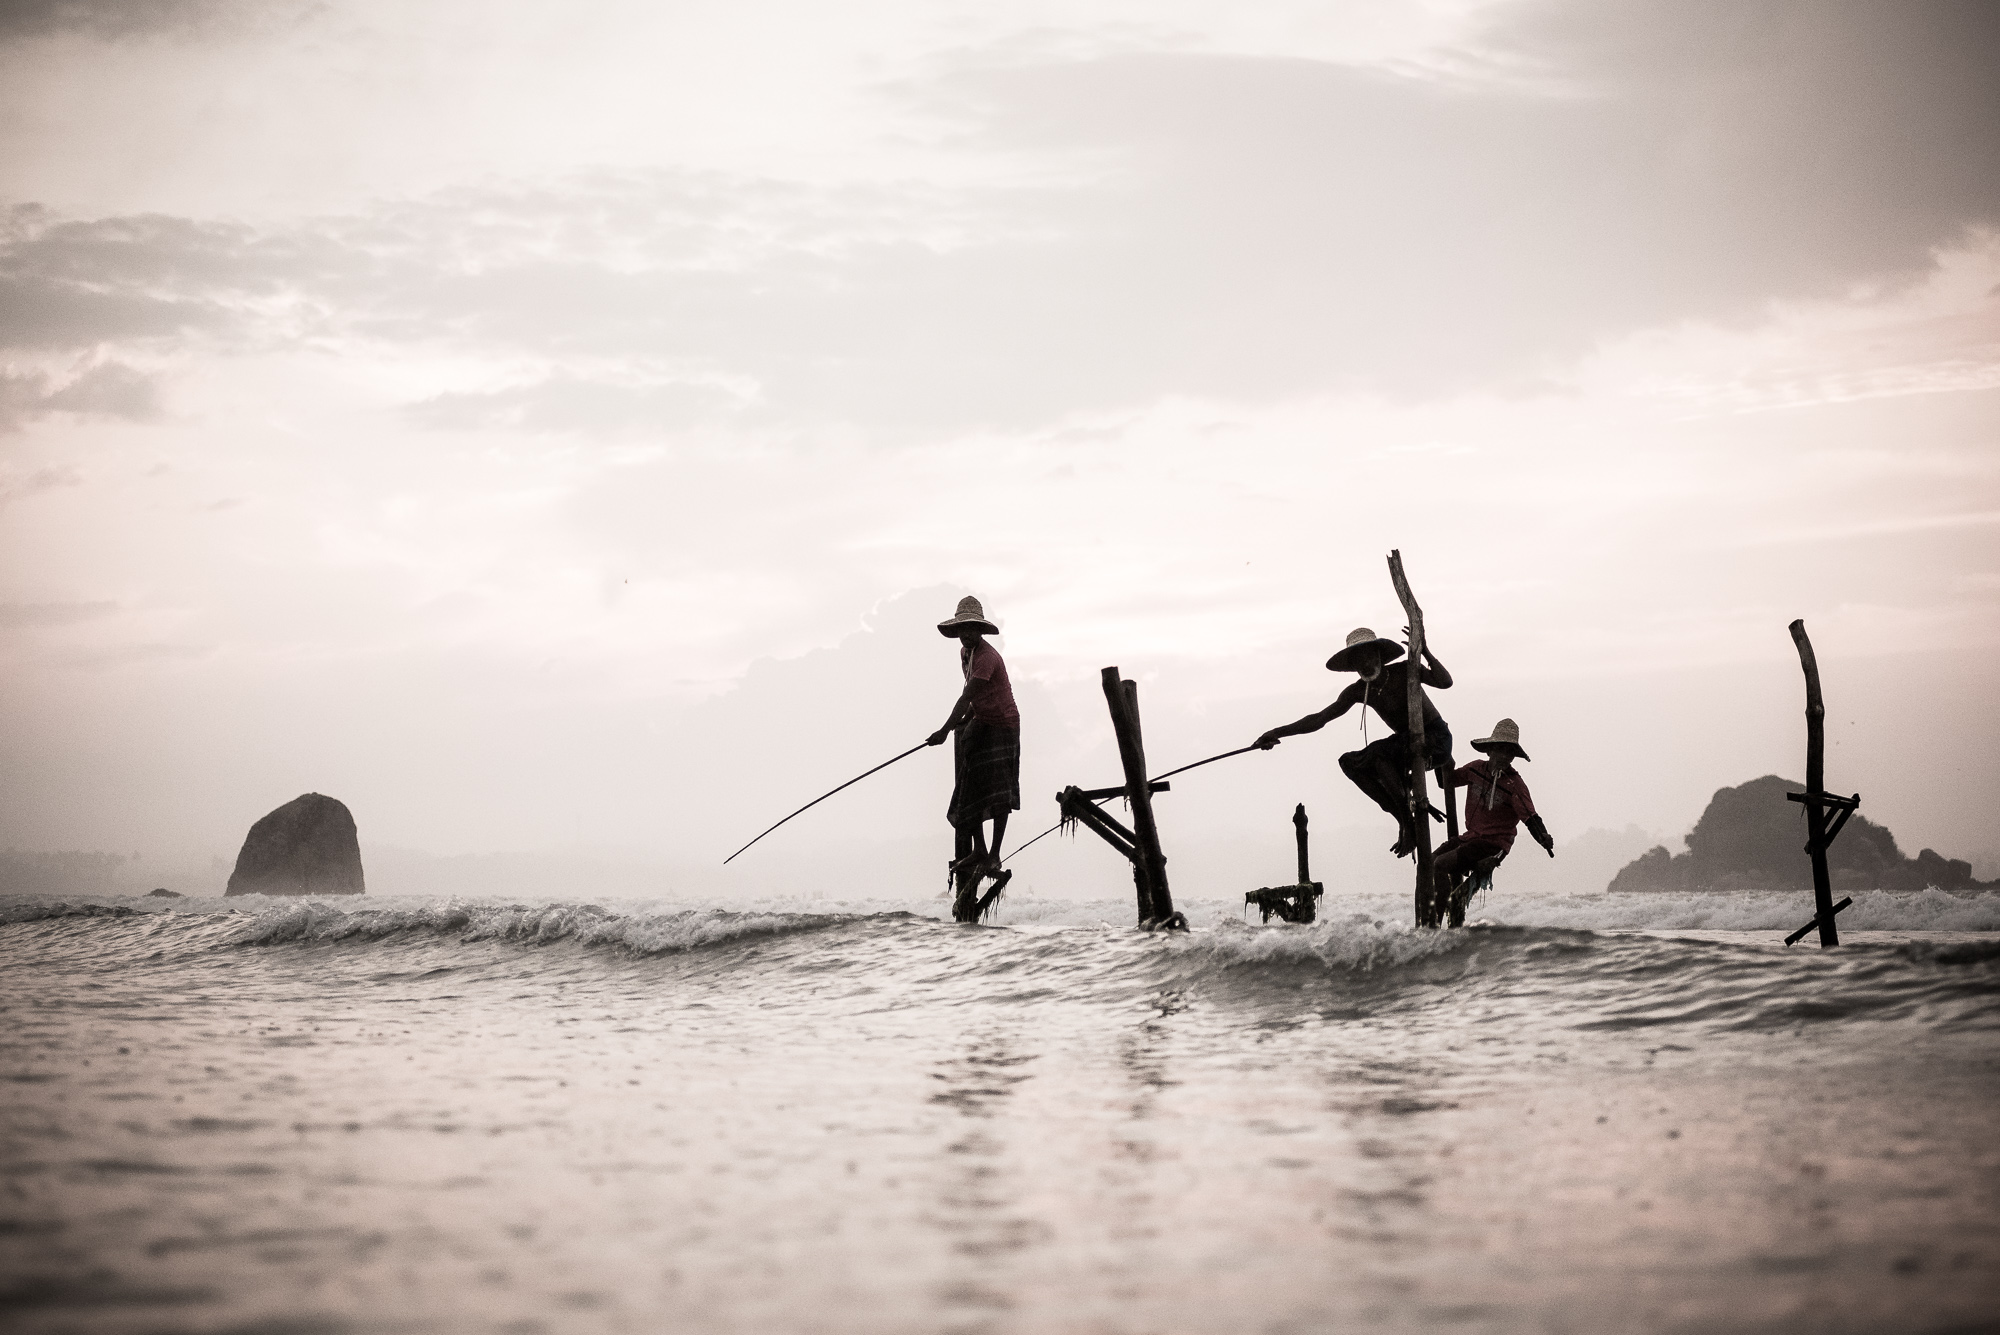 Stilt fishermen, Weligama beach